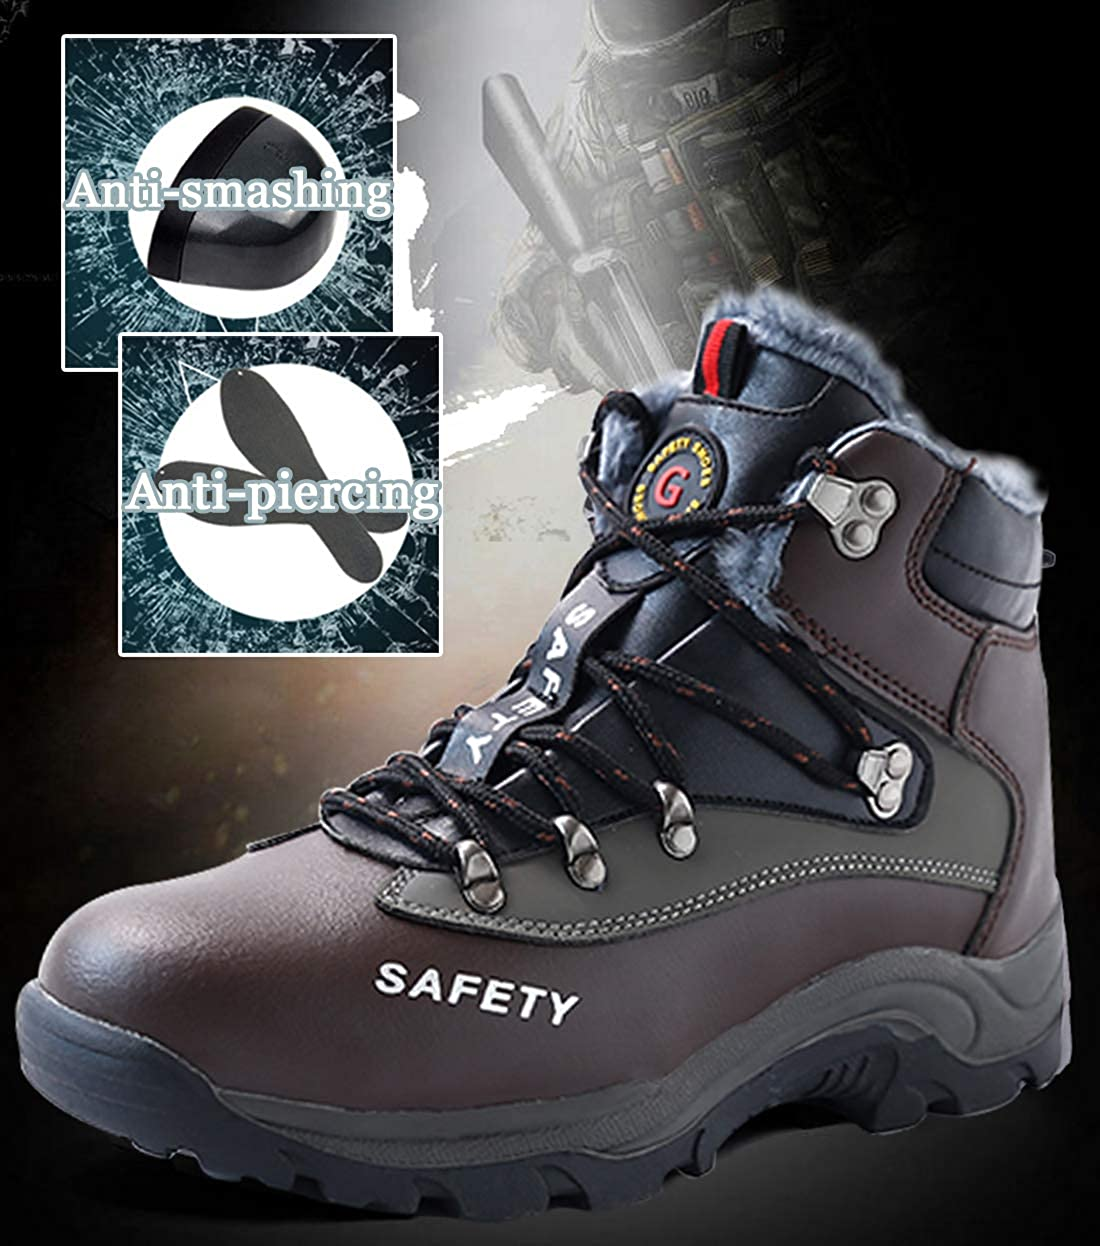 SROTER Safety Shoes for Men Steel Toe Fully Fur Lined Lightweight Warm Work Shoes Women Safety Boots Industrial Leather Ankle Footwear Winter